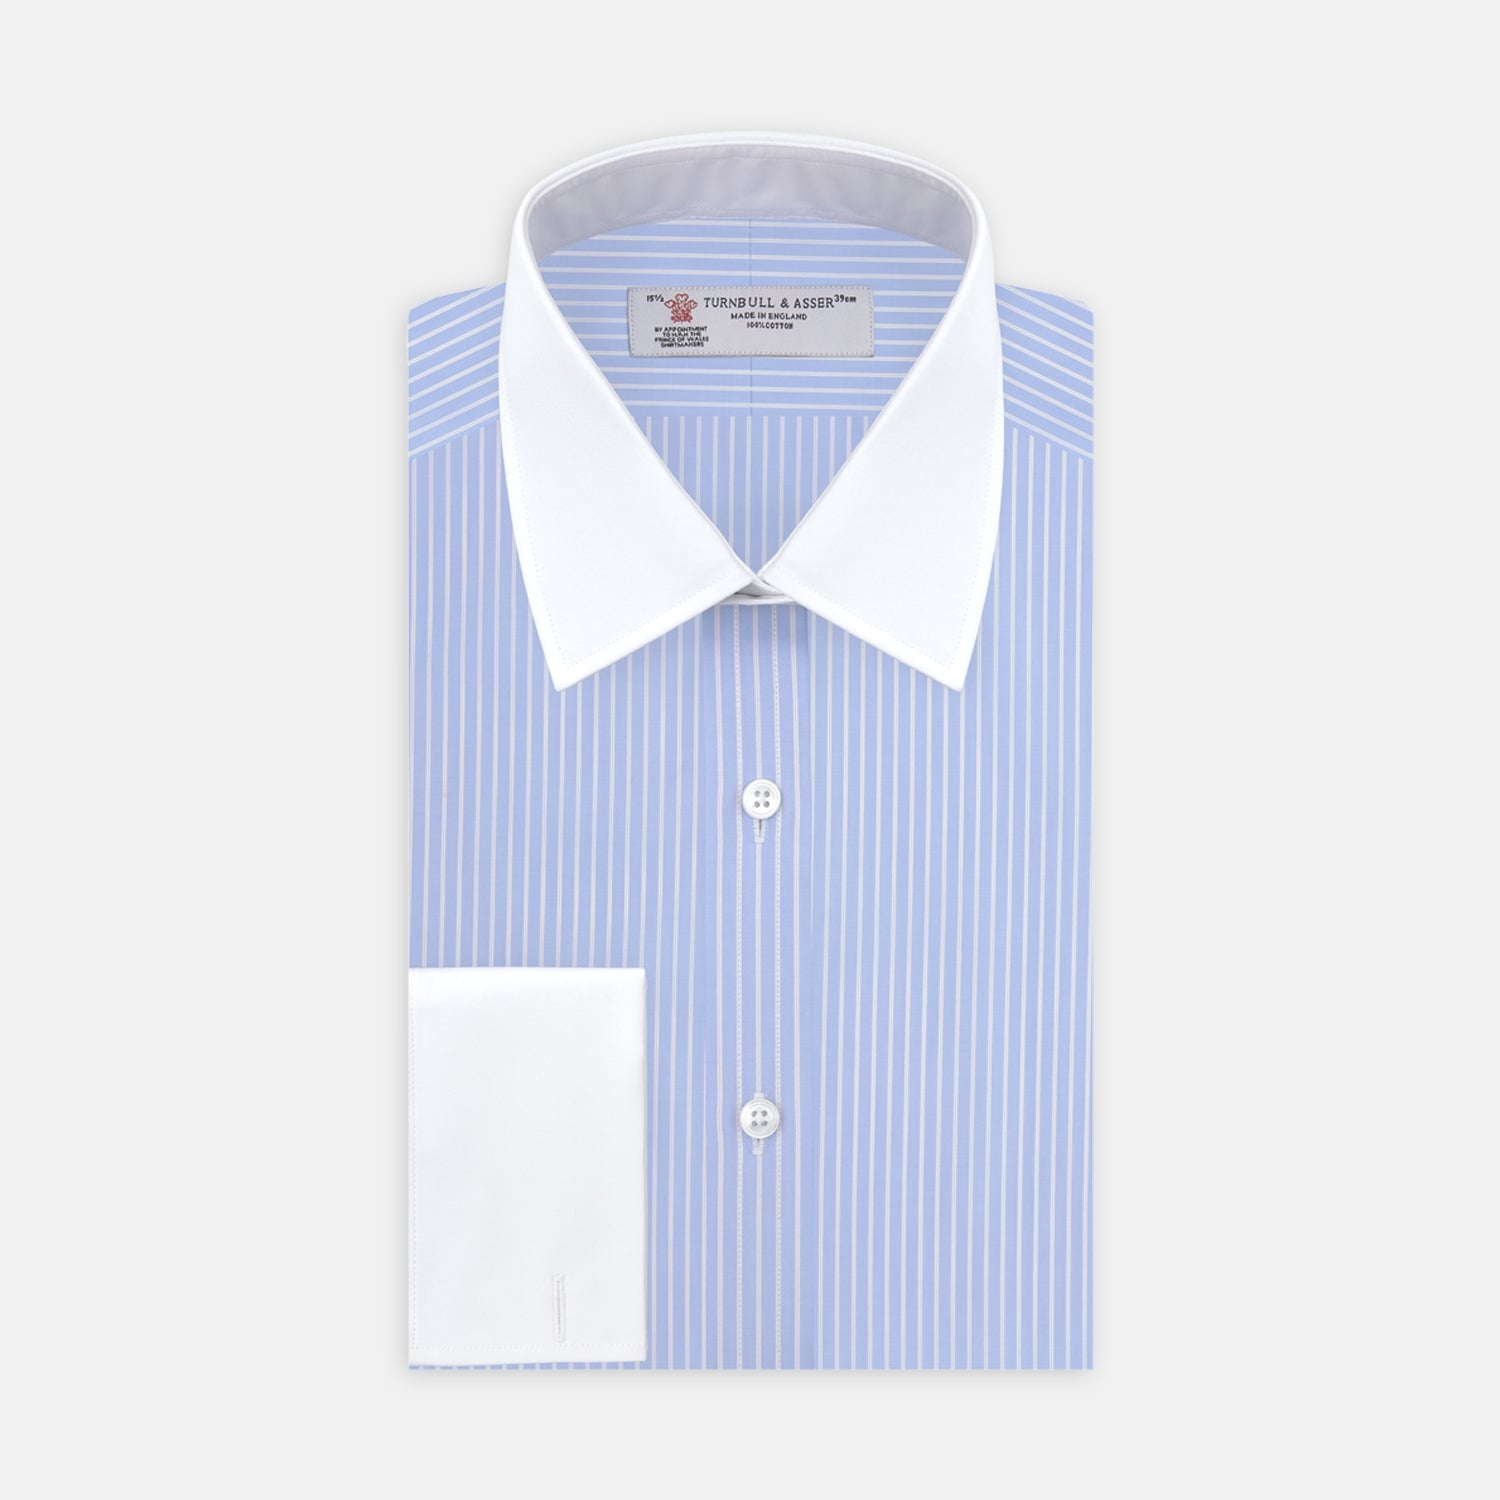 Blue and White Stripe Shirt with Contrast T&A Collar and Double Cuffs - 17.0 from Turnbull & Asser